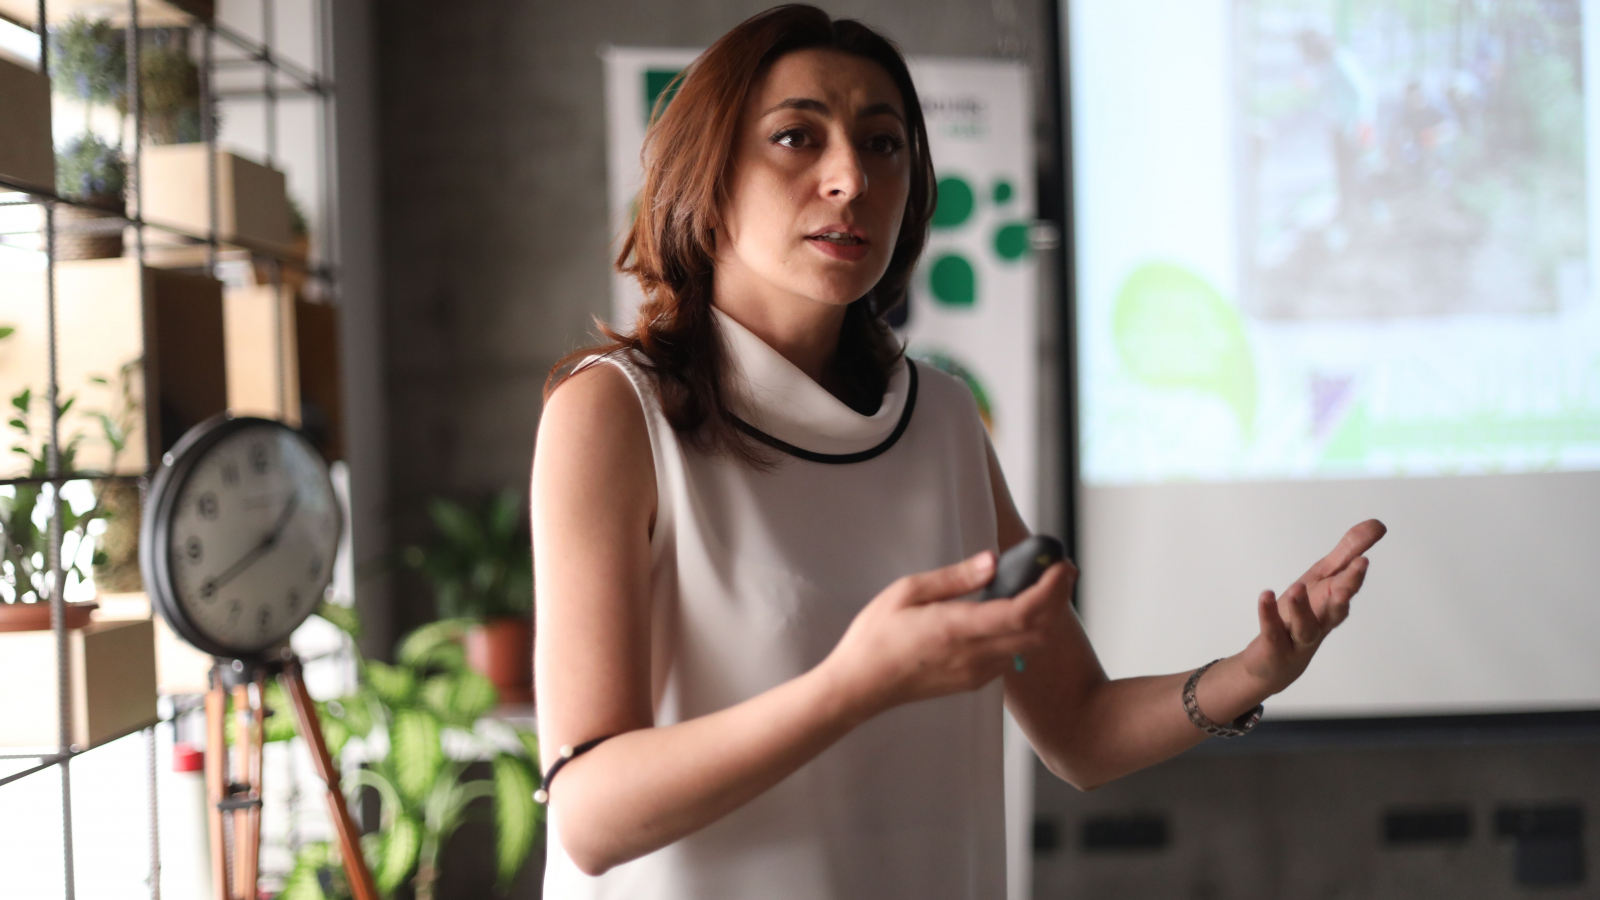 Lilit Sahakyan at the project presentation in Yerevan on 4 October 2019